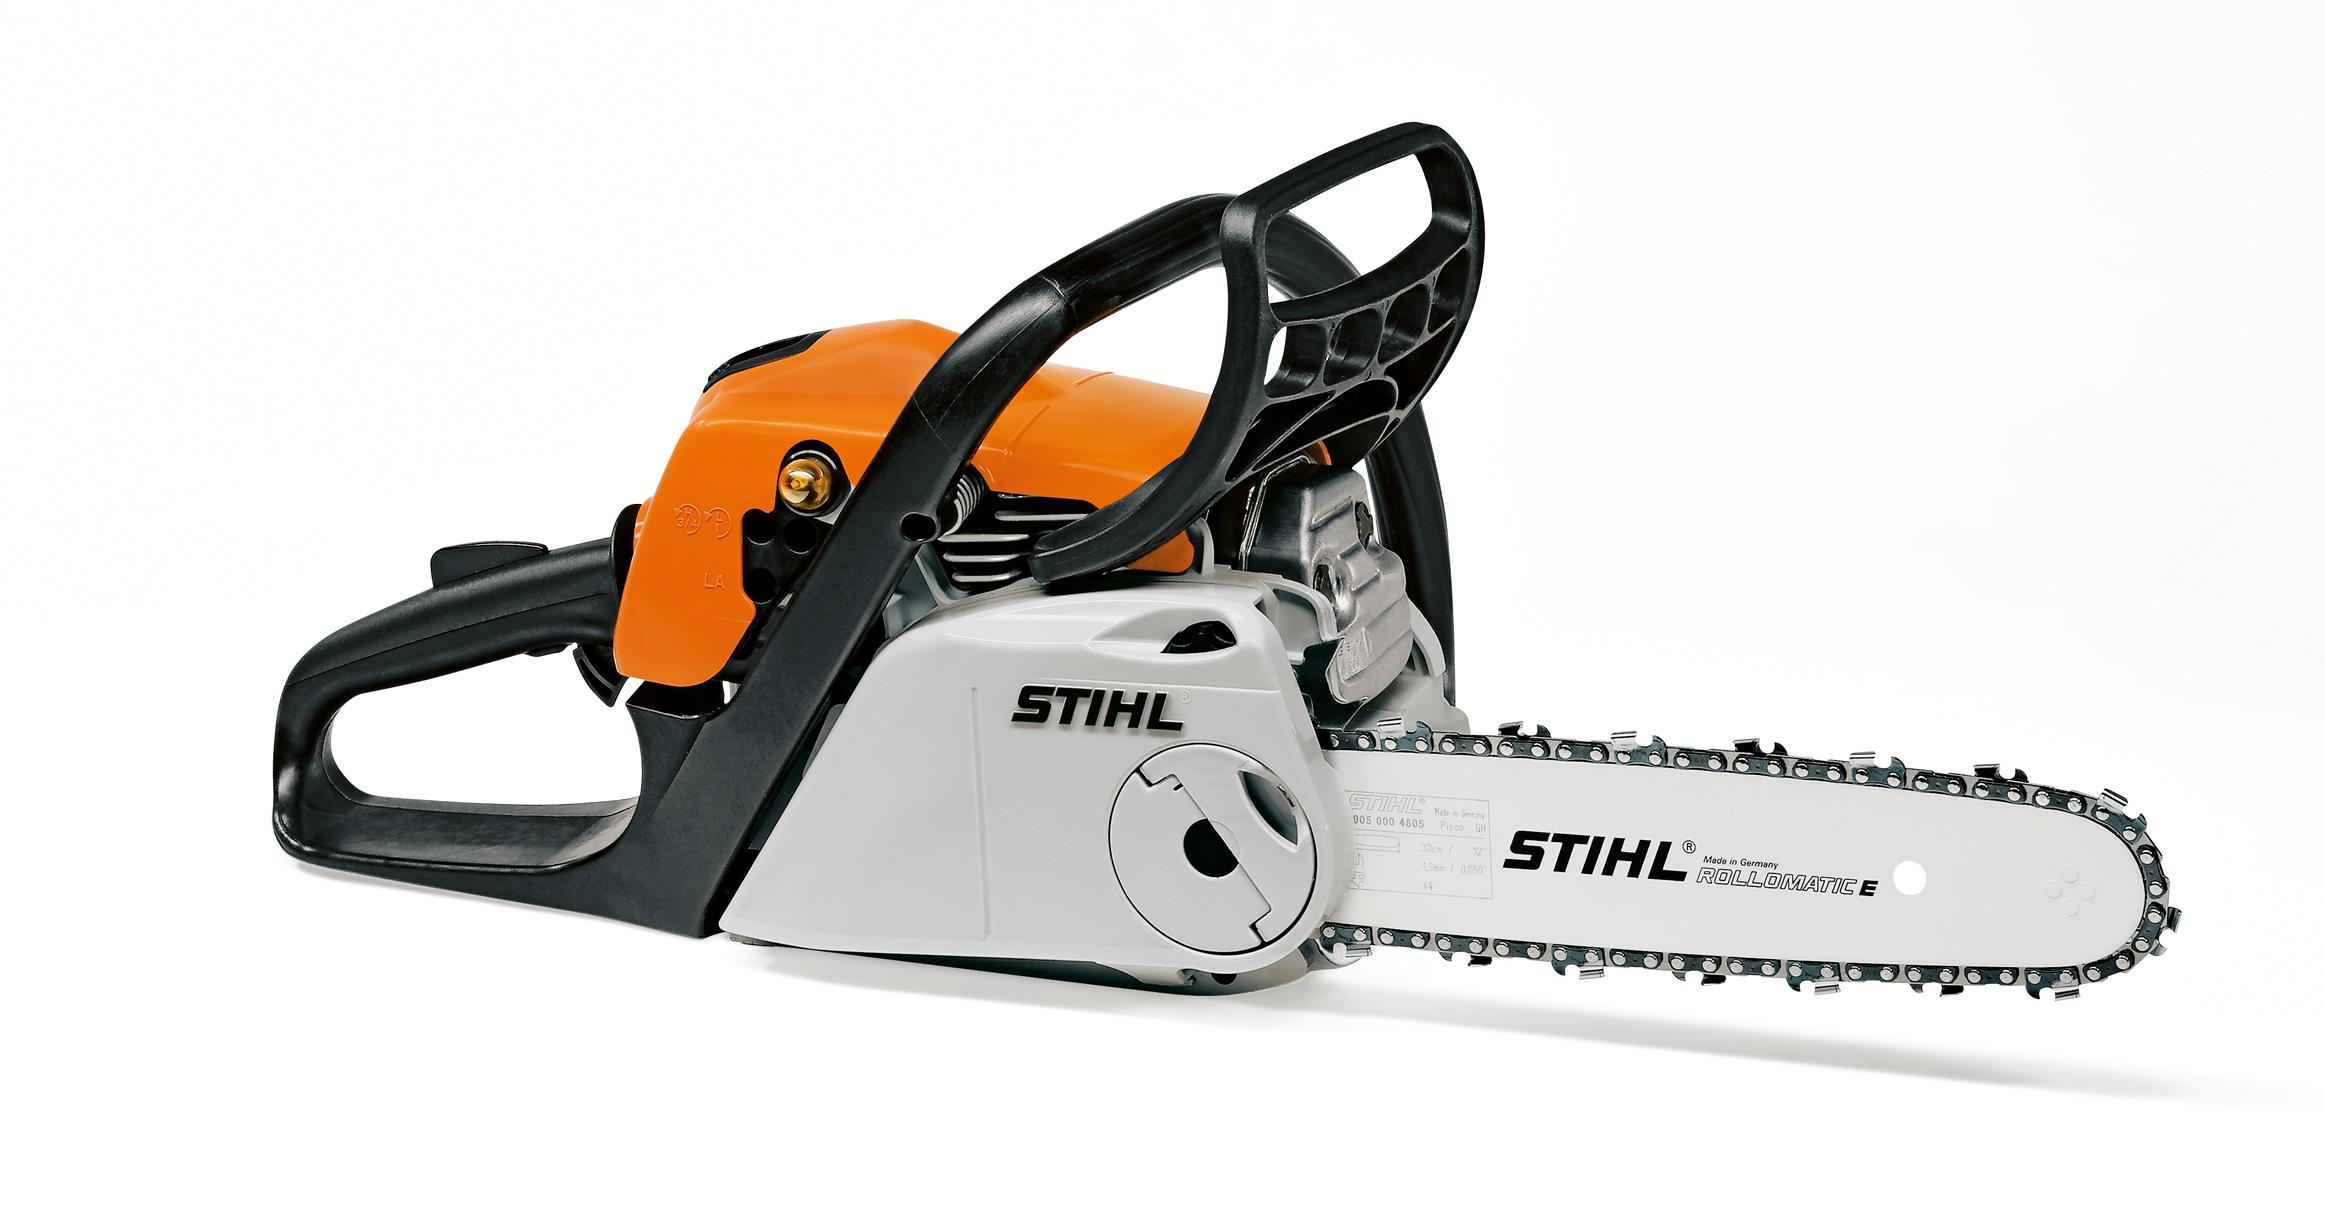 Stihl has neighbours green with envy stihl - Stihl ms 181 ...